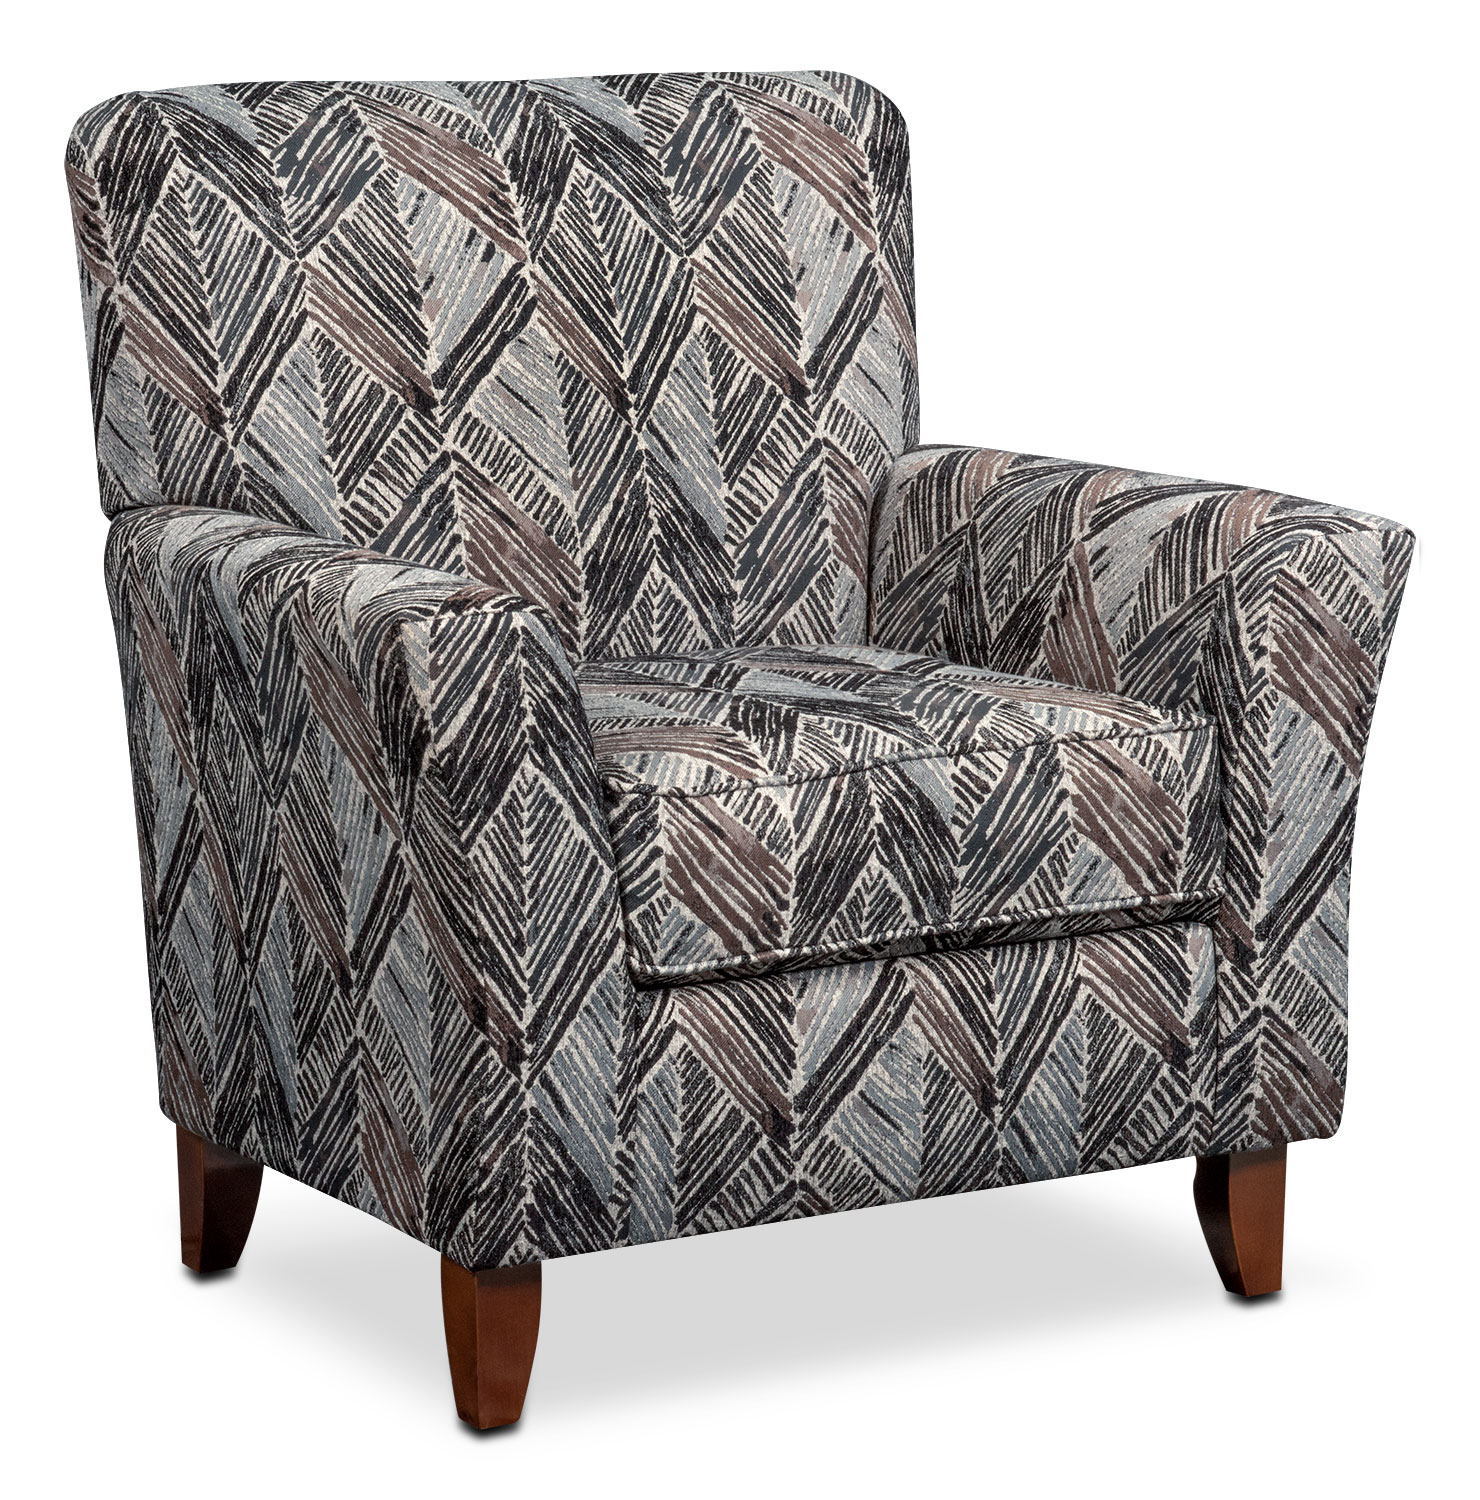 Lakelyn Accent Chair - Charcoal